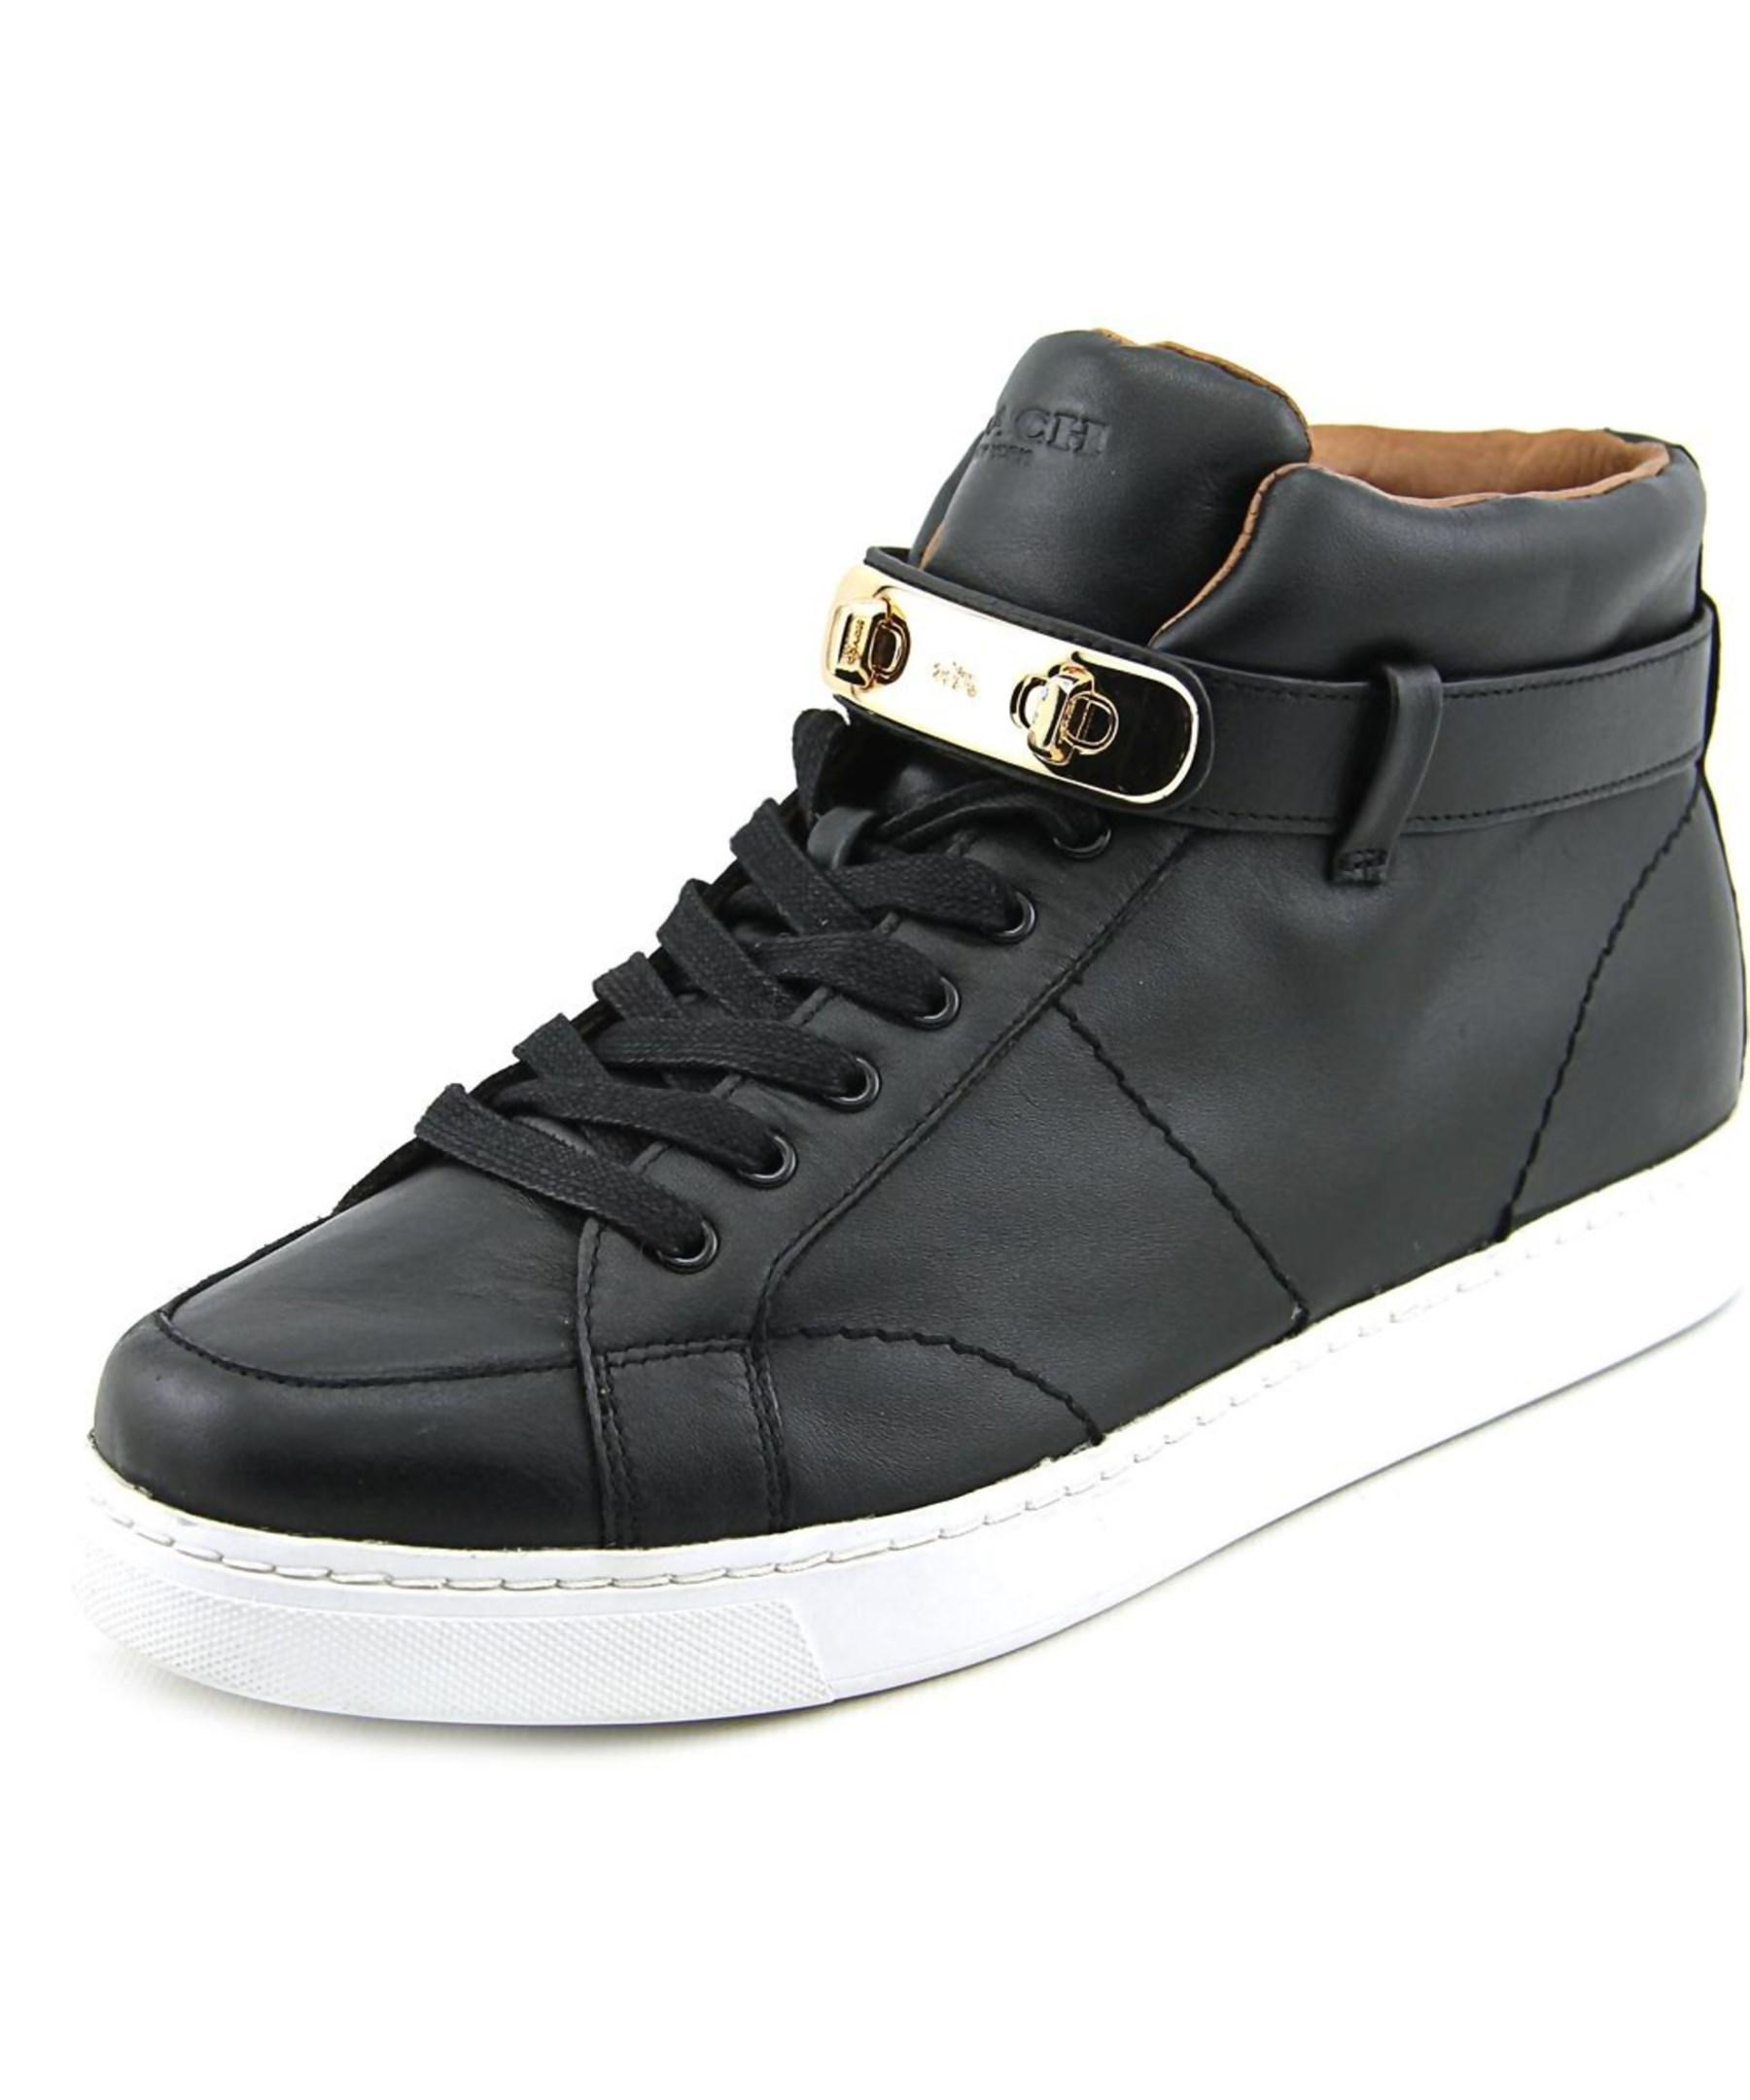 Mens Coach Shoes Fashion